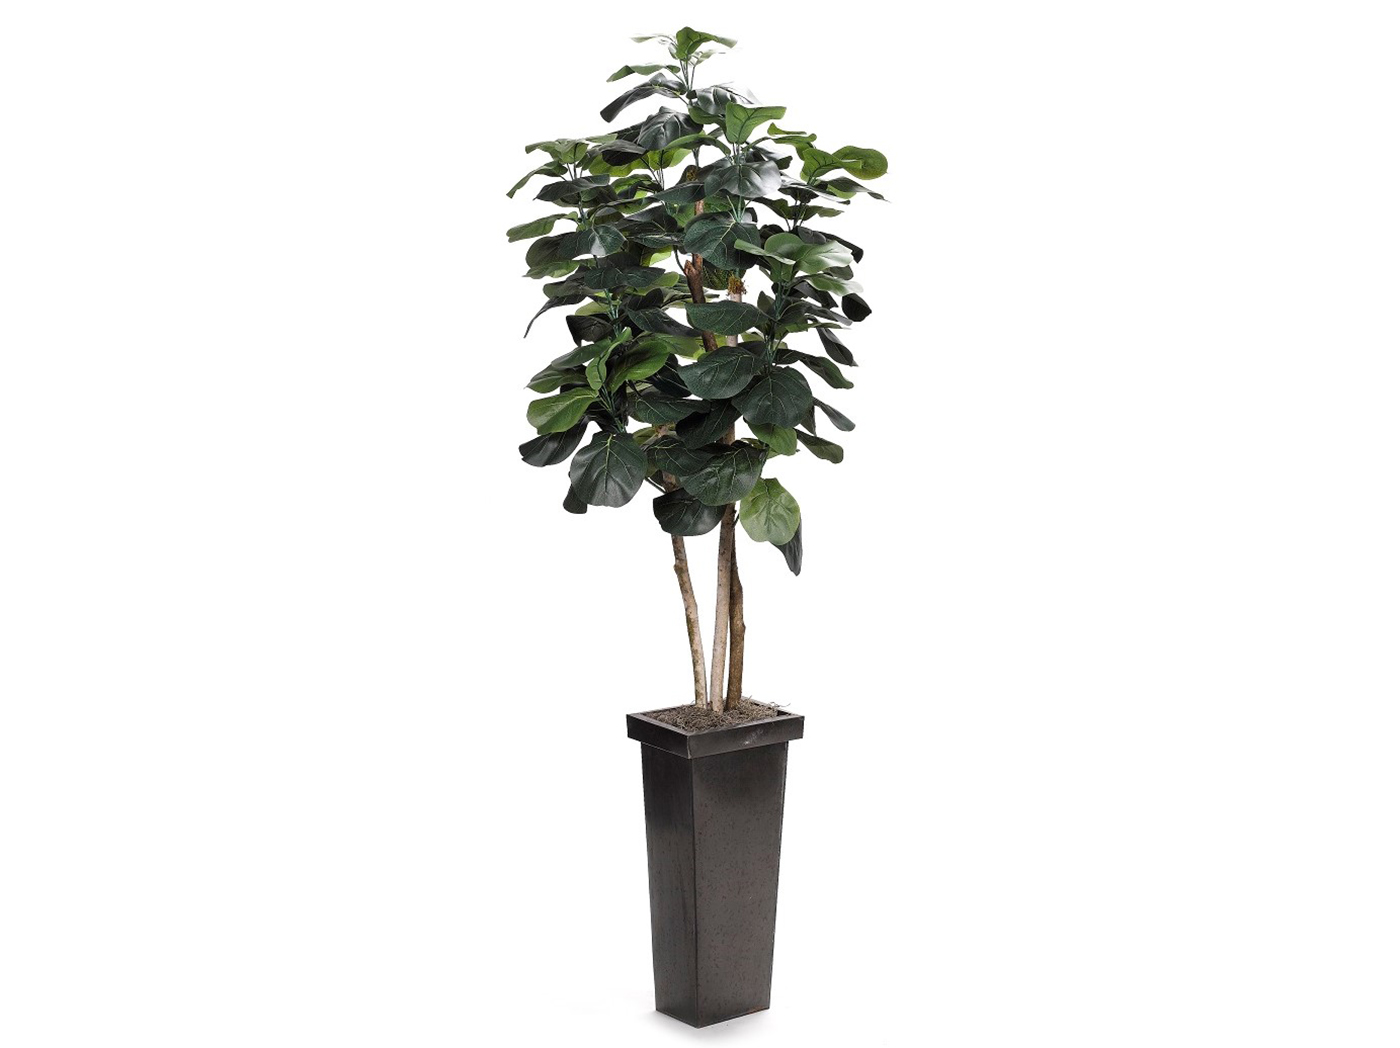 Fiddle Leaf Fig Tree In Square Metal Planter 8'H